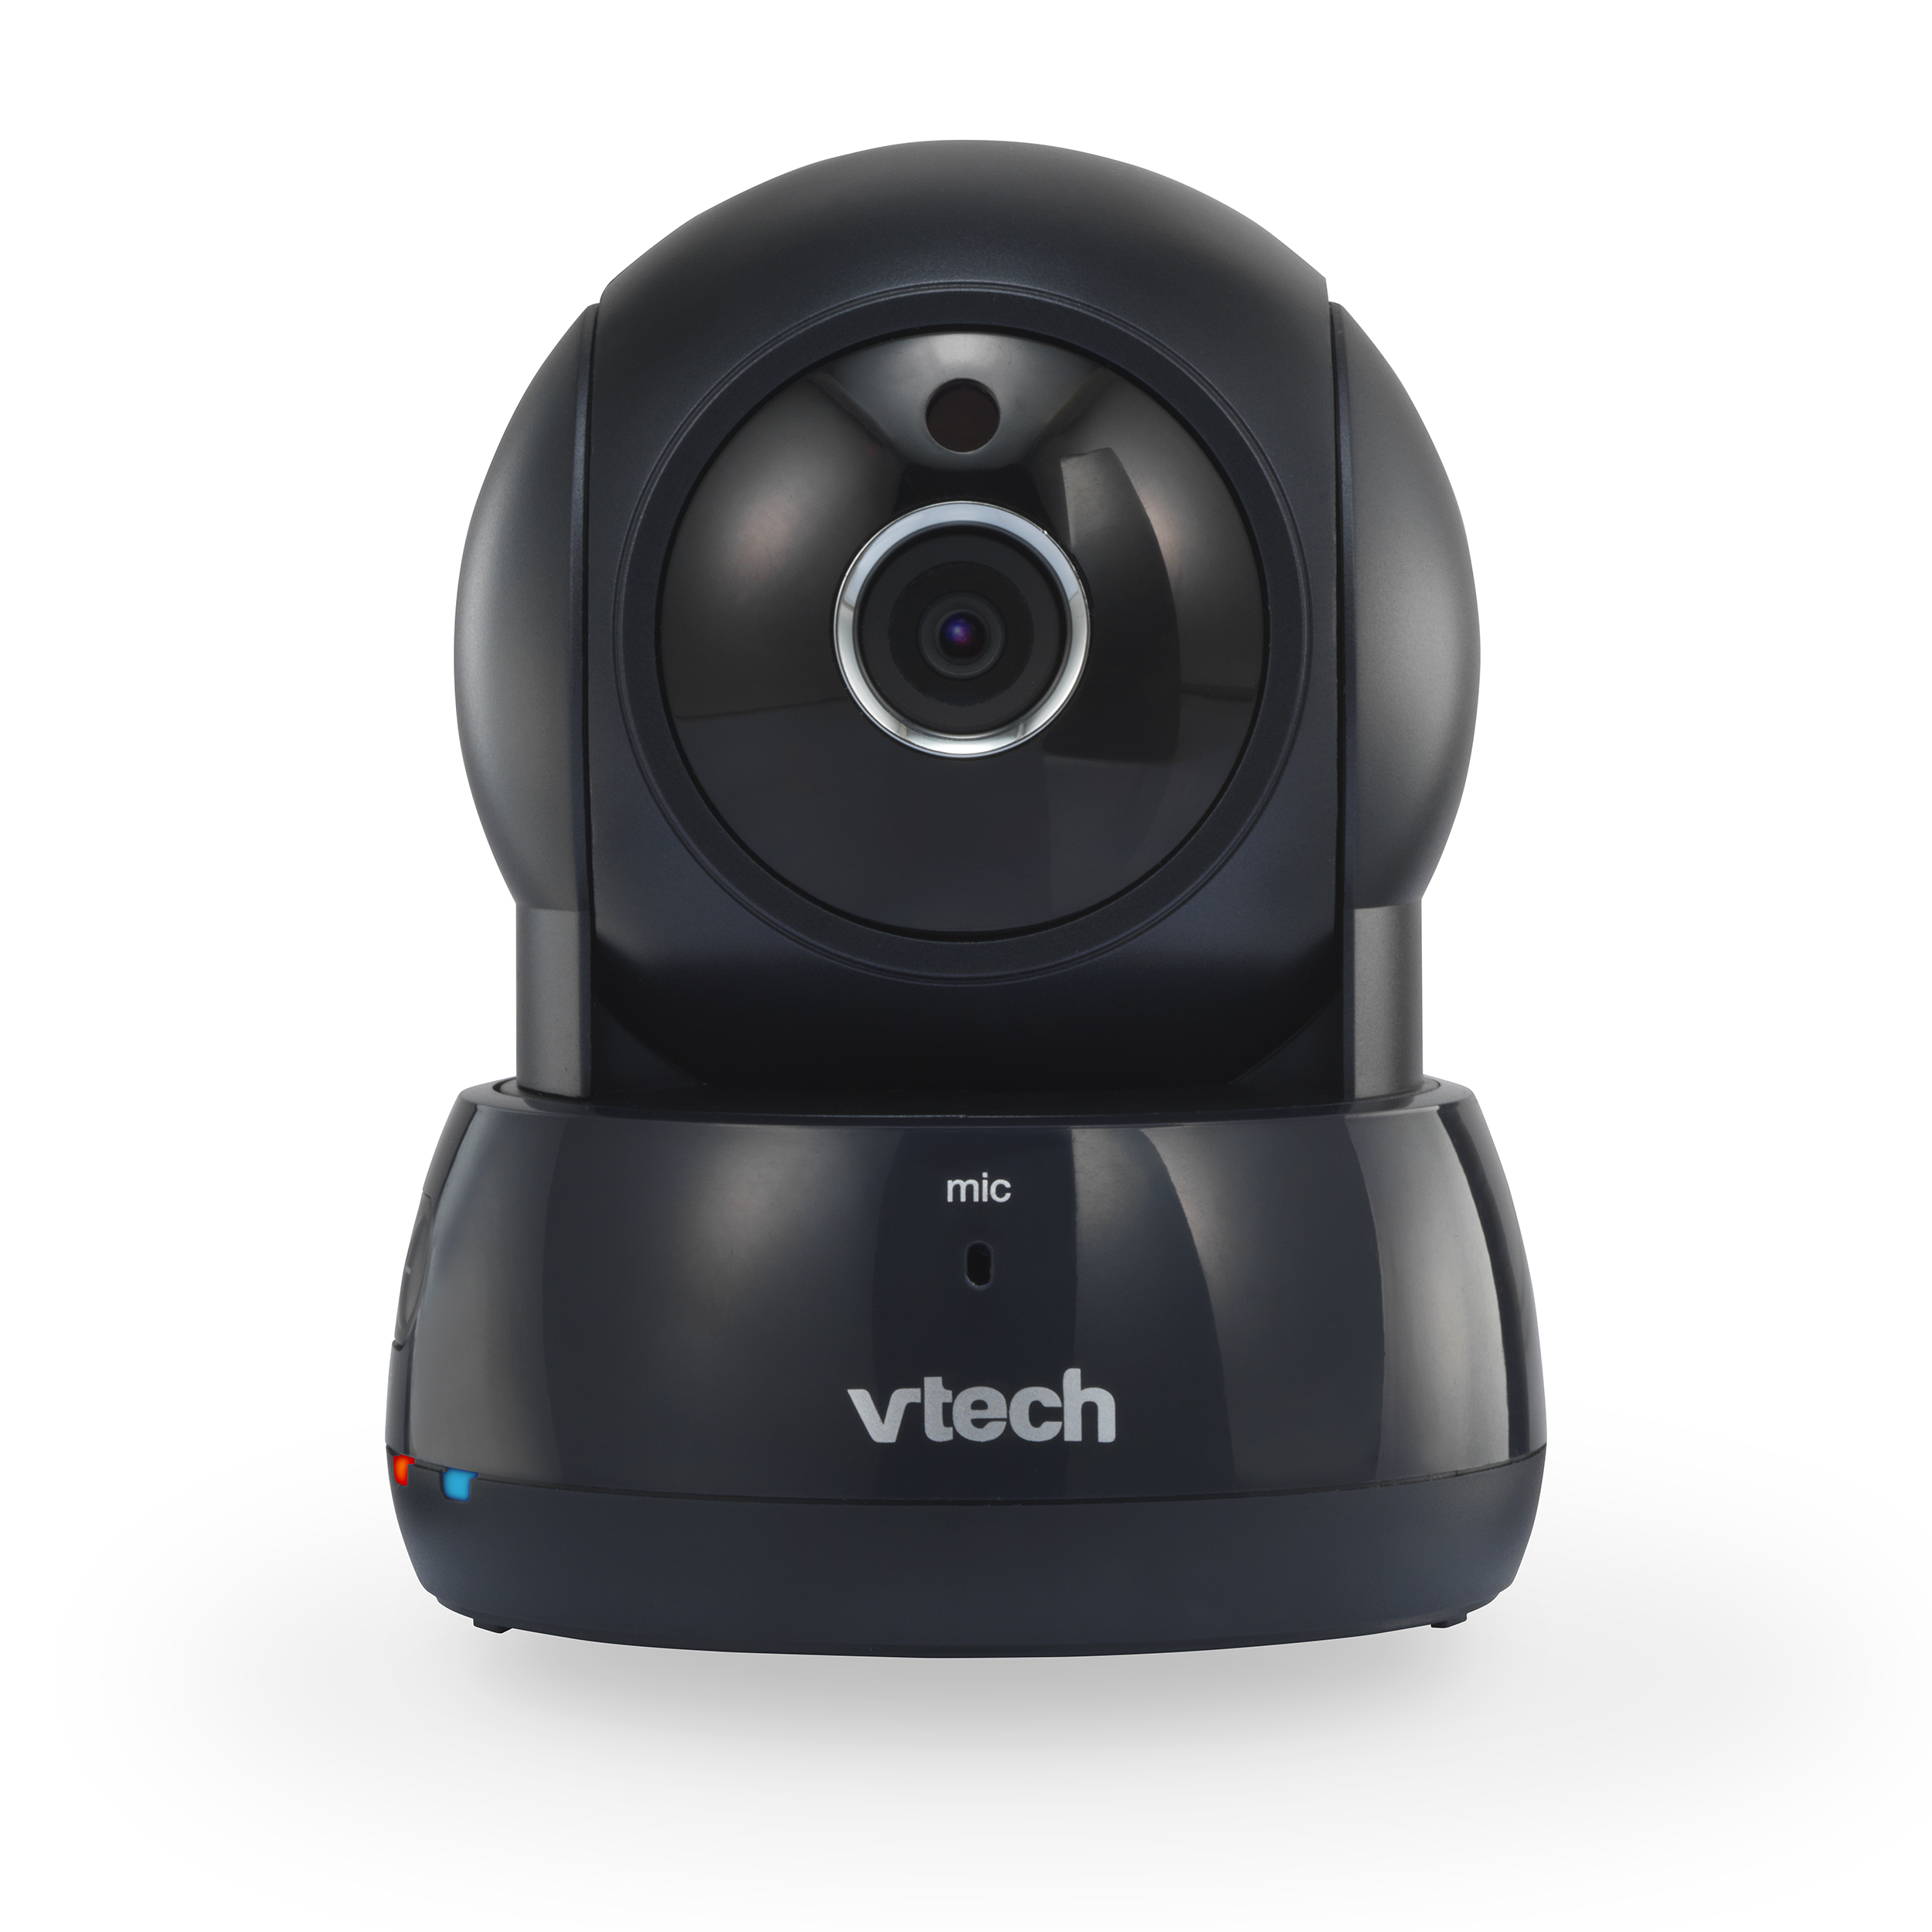 VTech VC9311-122 16GB Wi-Fi IP Video Camera with Remote Pan & Tilt, Free Live Streaming and Automatic Infrared Night Vision